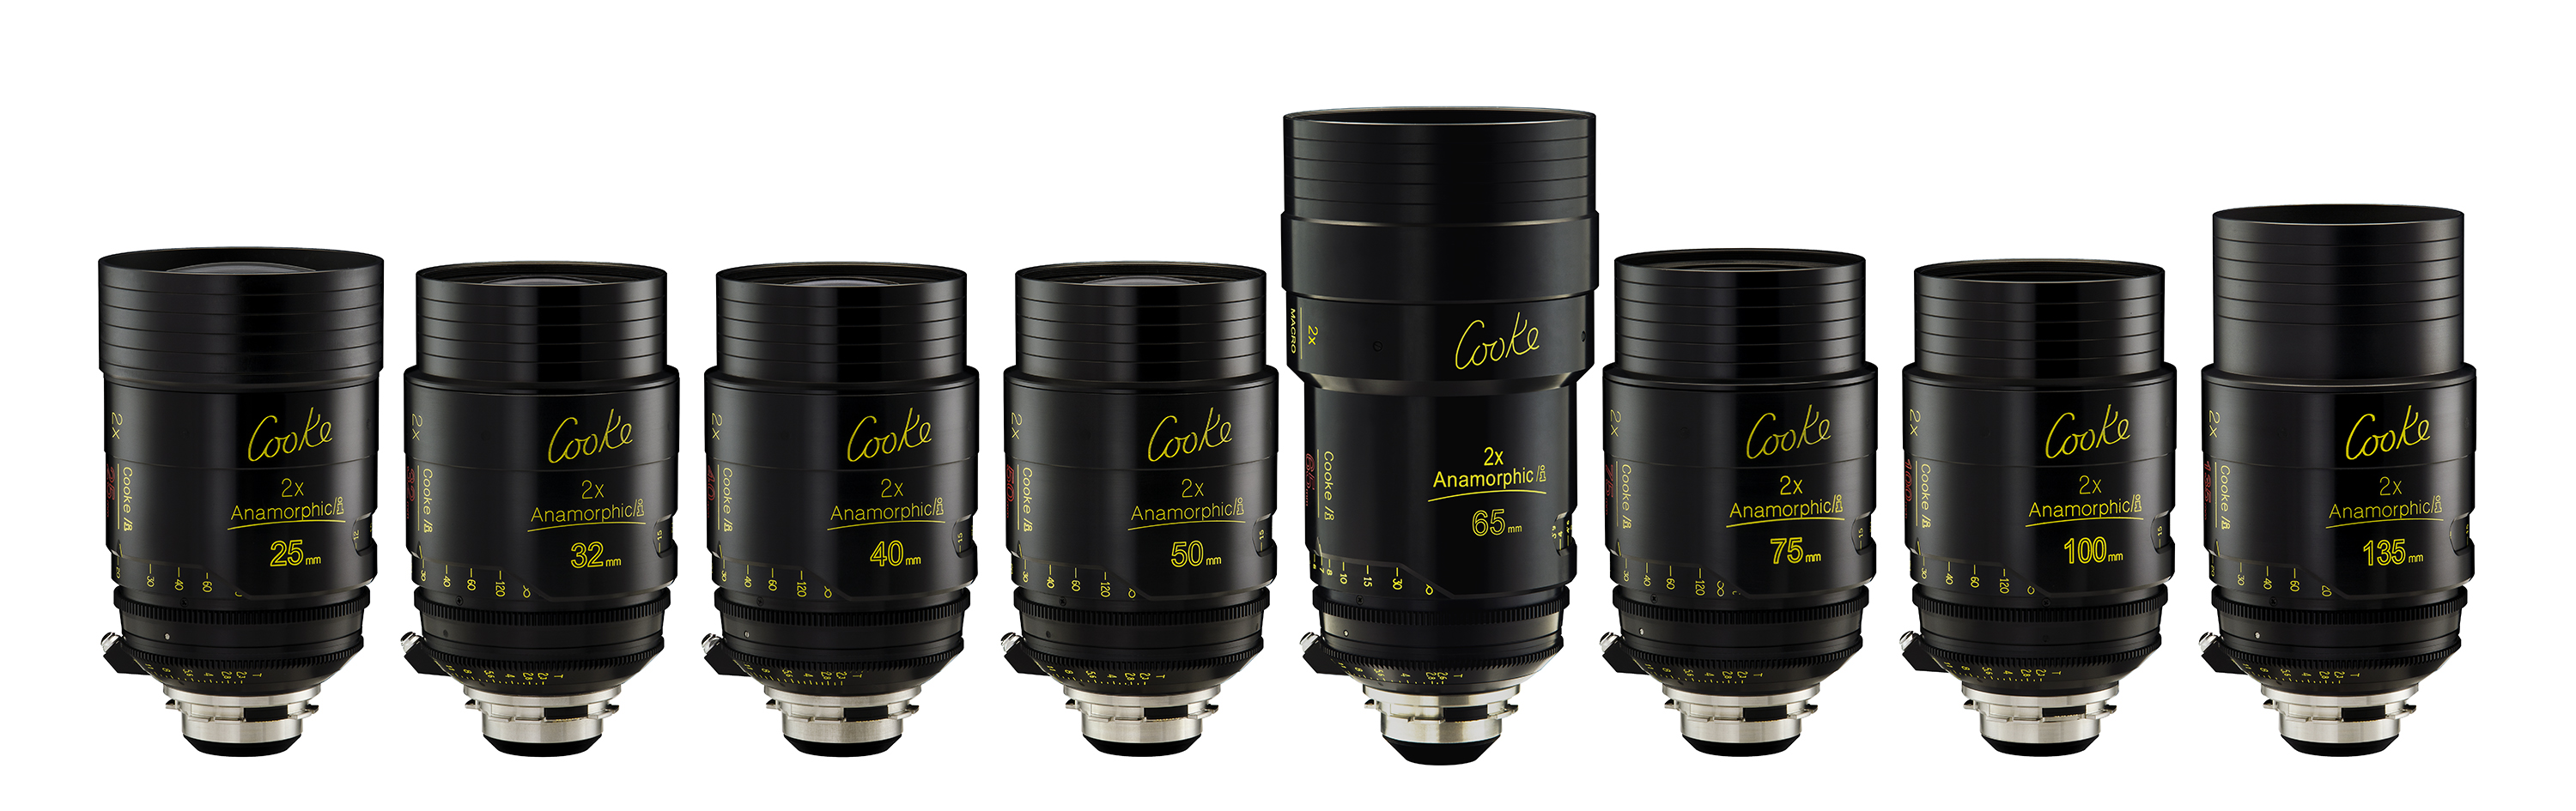 Cooke Anamorphic Lenses Bring Class and Character to a Clean Digital World 2